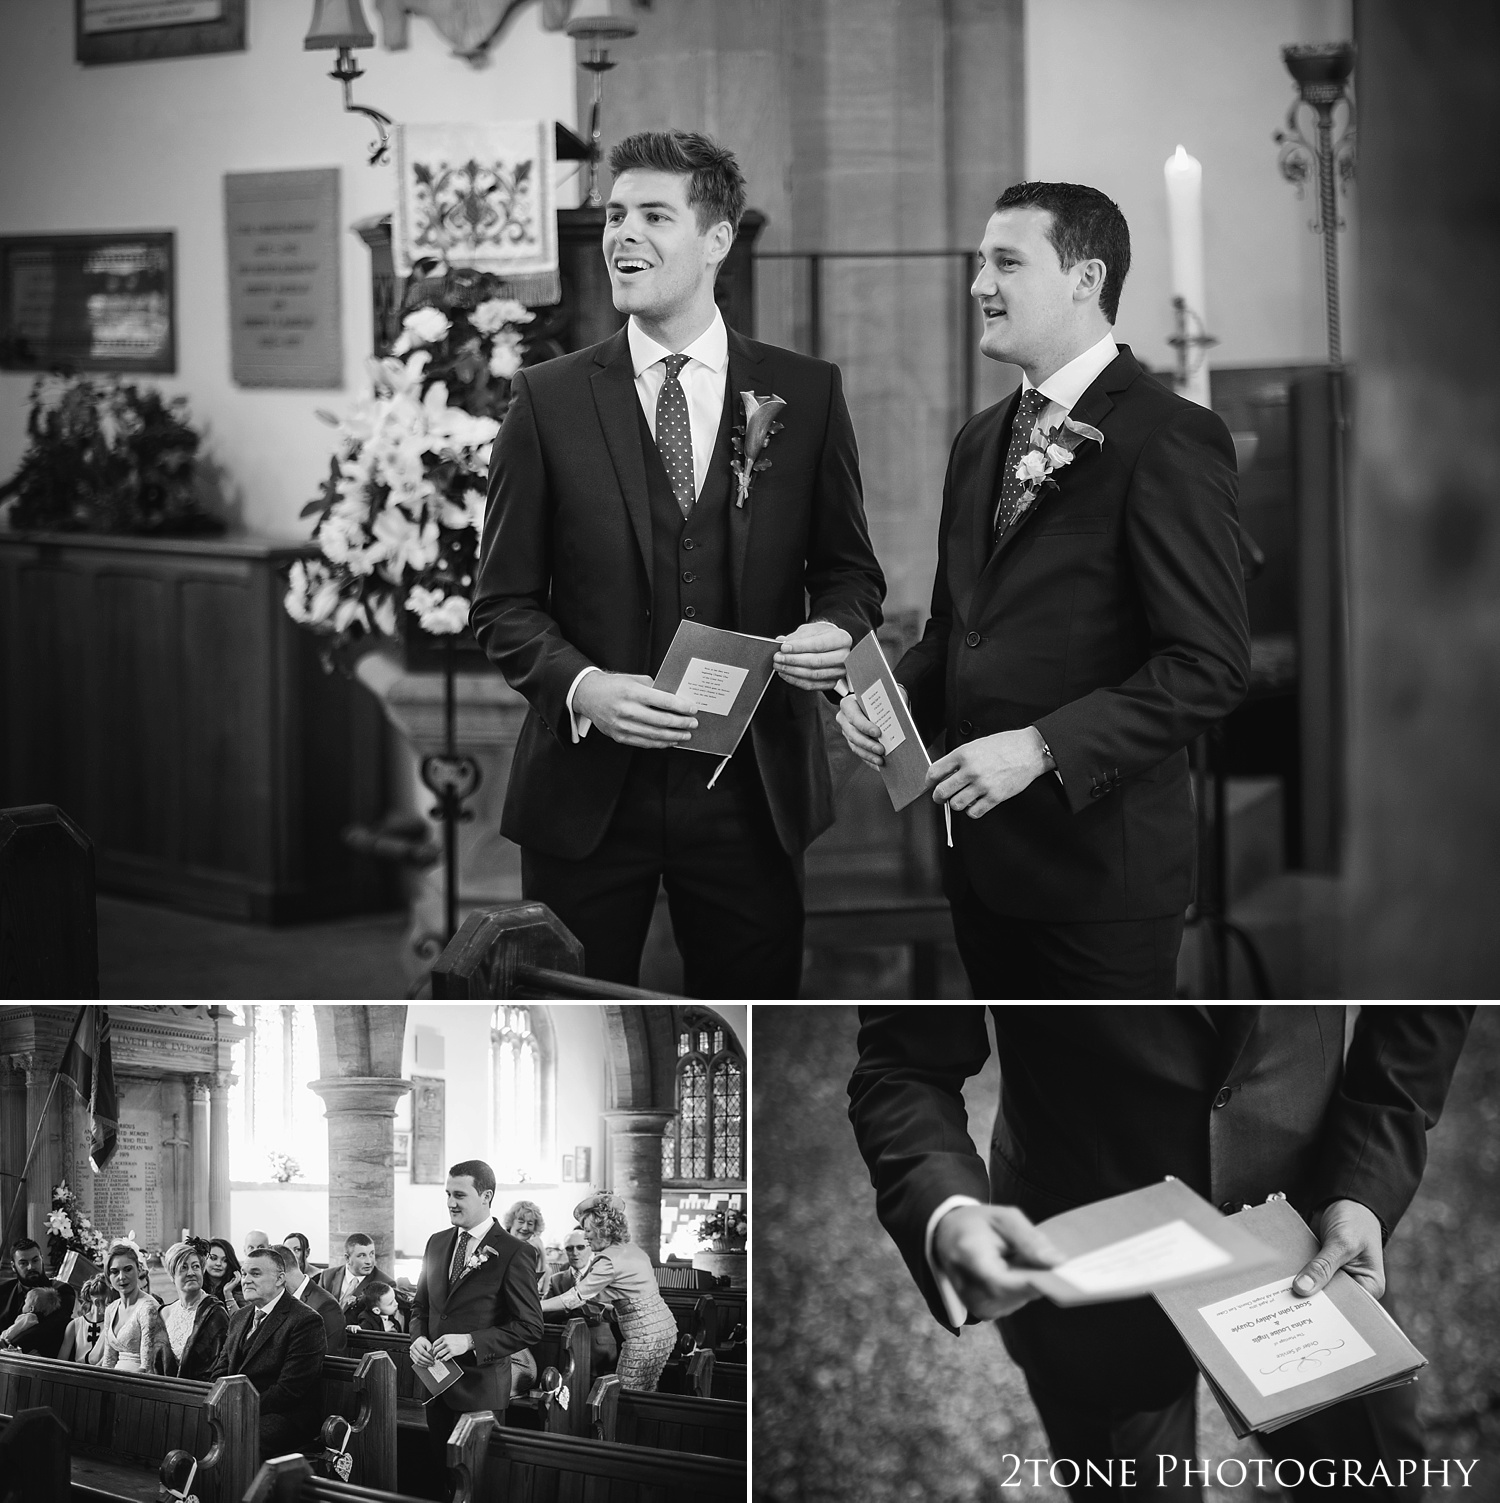 Story telling wedding photography in Somerset by husband and wife team 2tone Photography ww.2tonephotography.co.uk